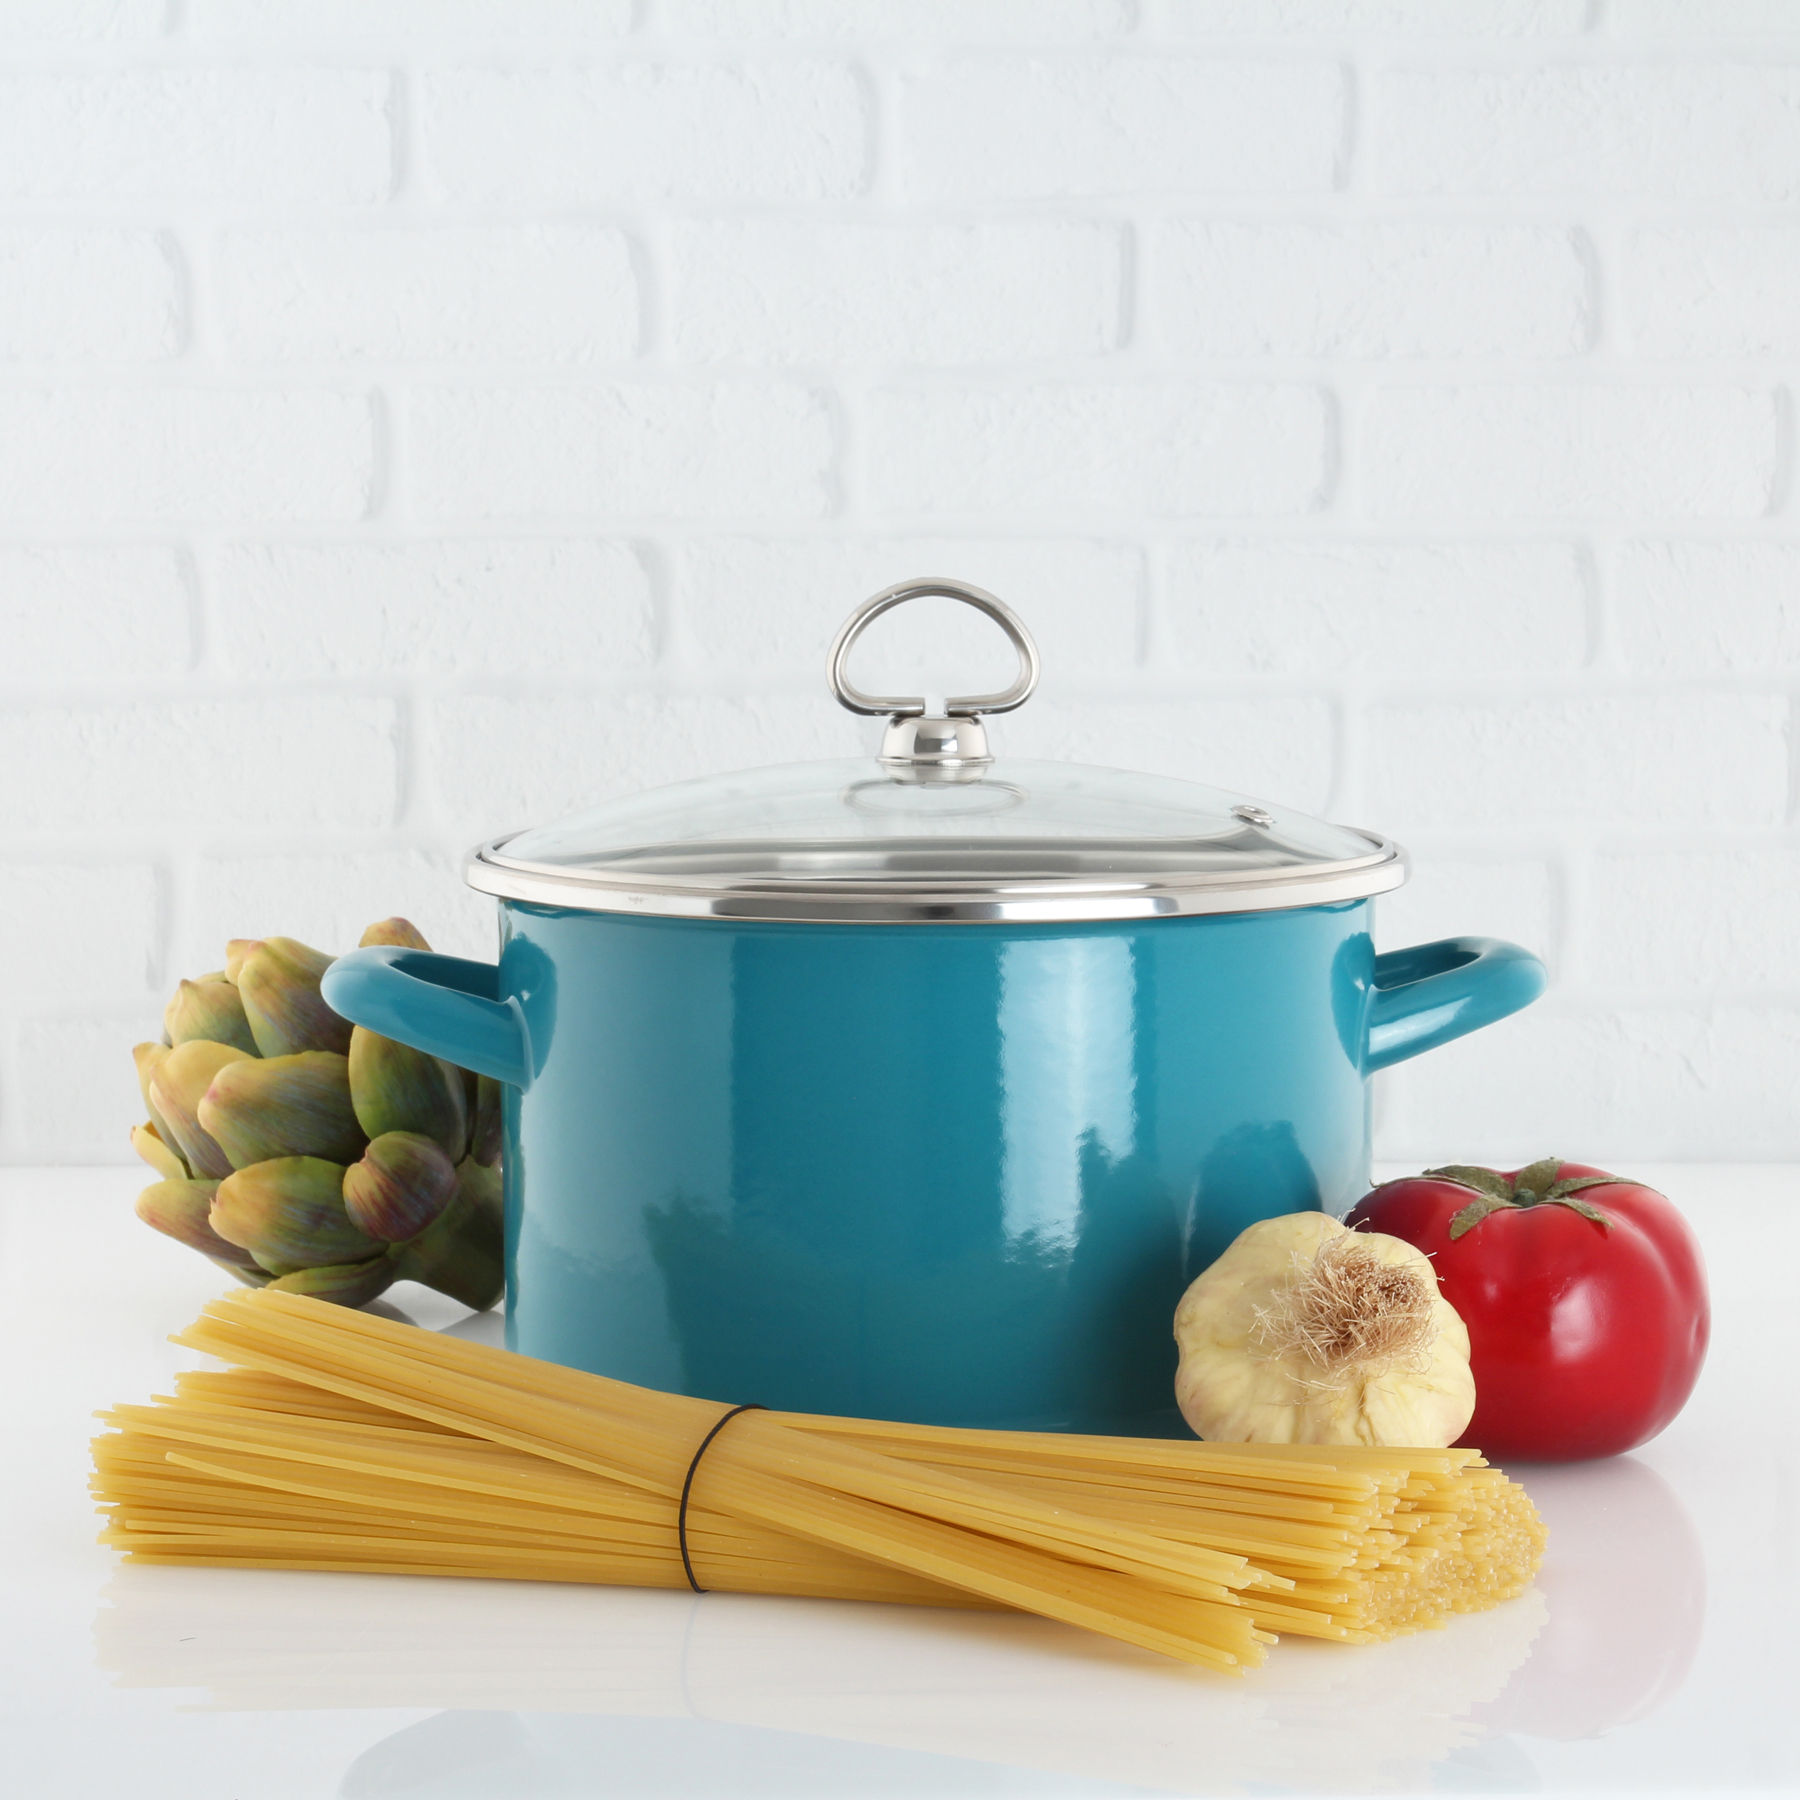 enamel on steel 4 quart stockpot healthiest cooking surface available inert color exterior will never fade lifetime warranty in action